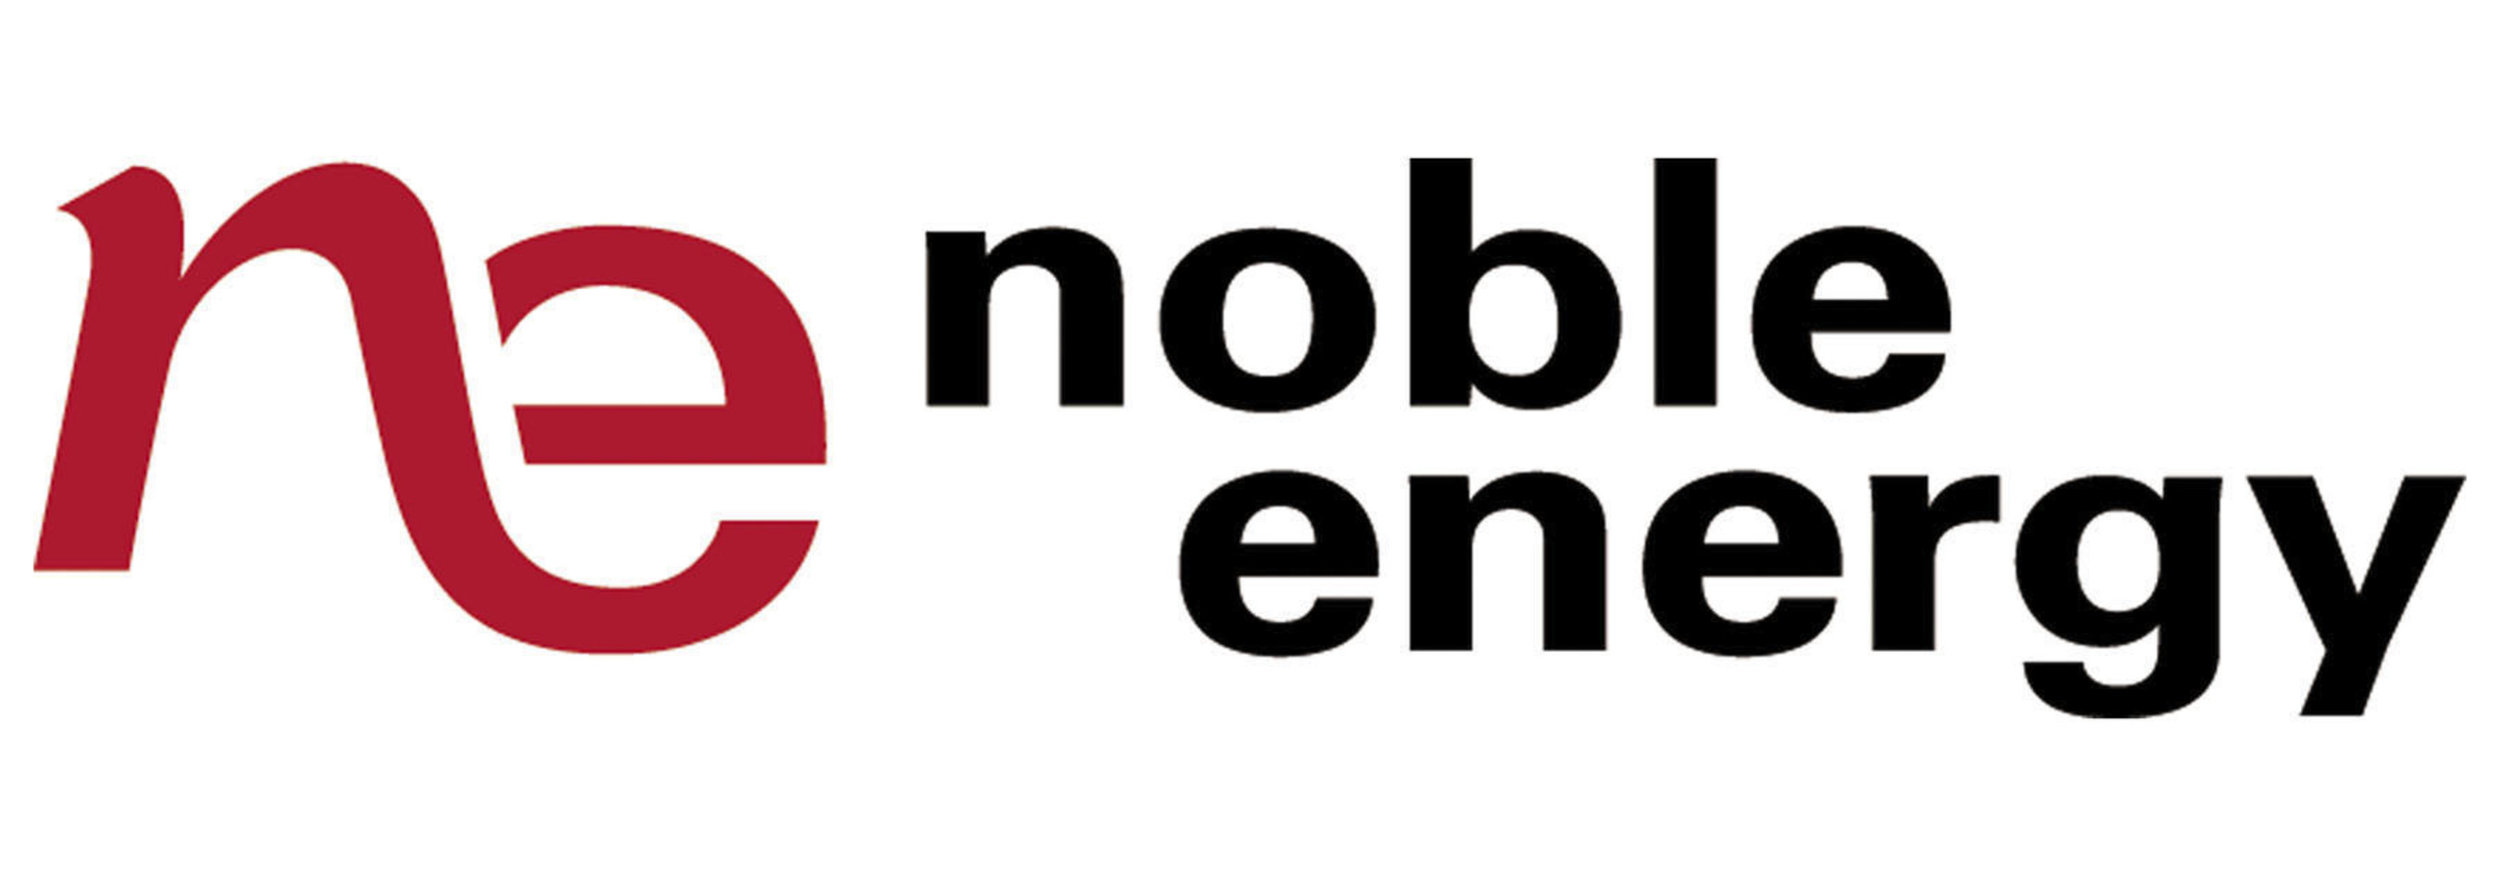 noble energy.jpeg